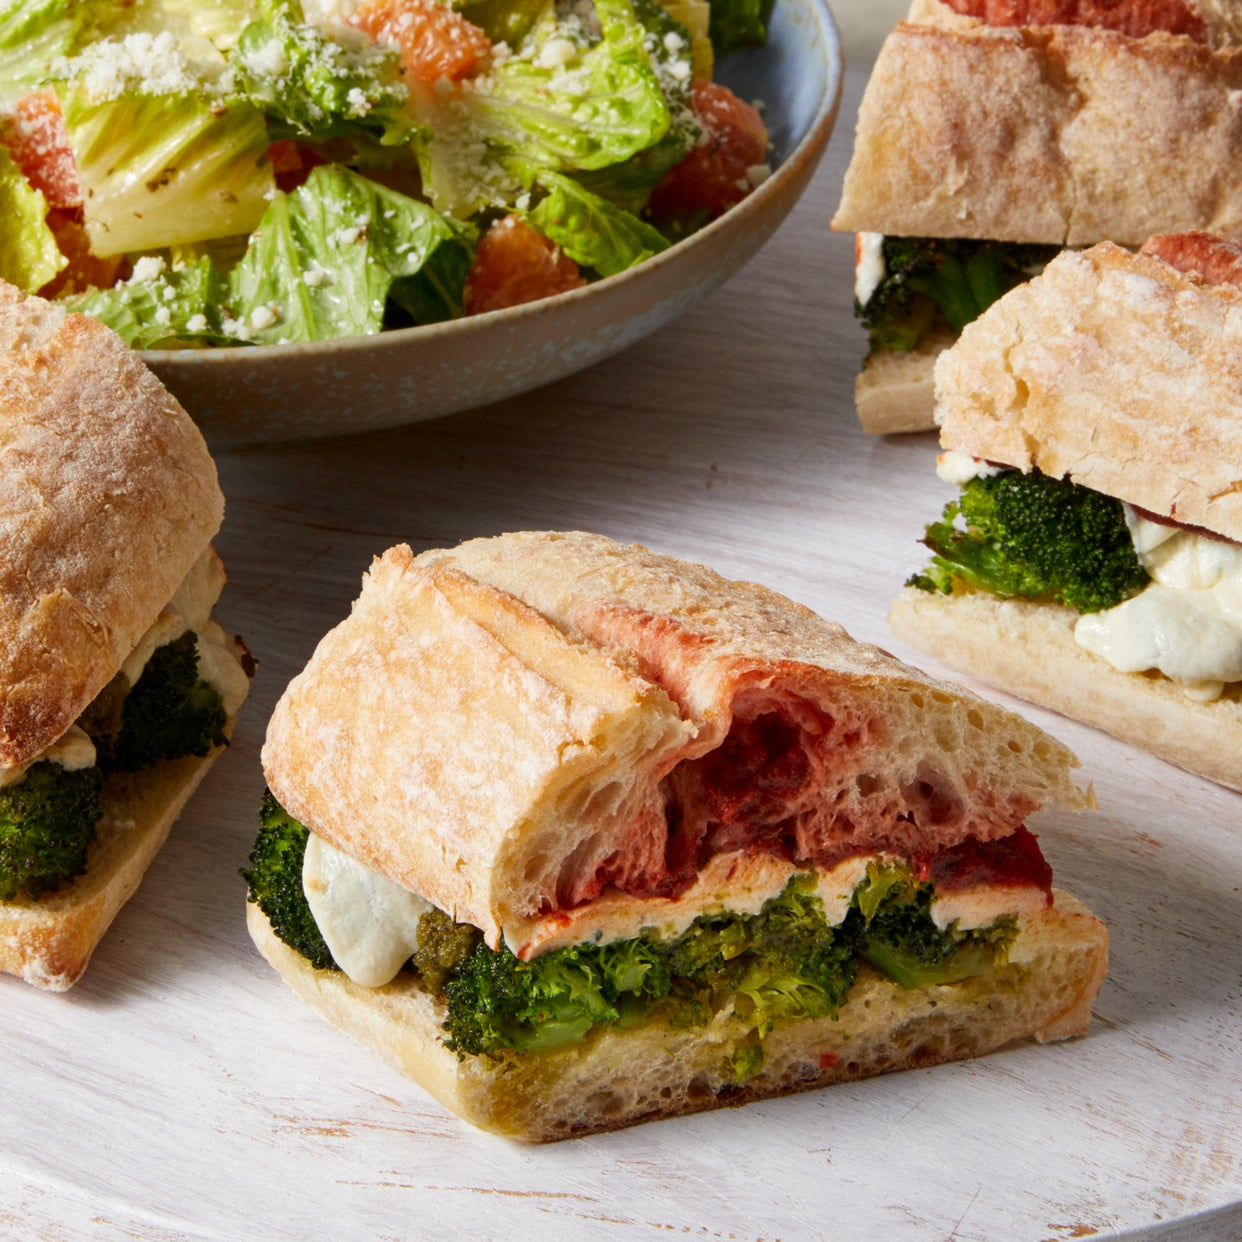 Basil Pesto & Broccoli Subs with Romaine & Orange Salad